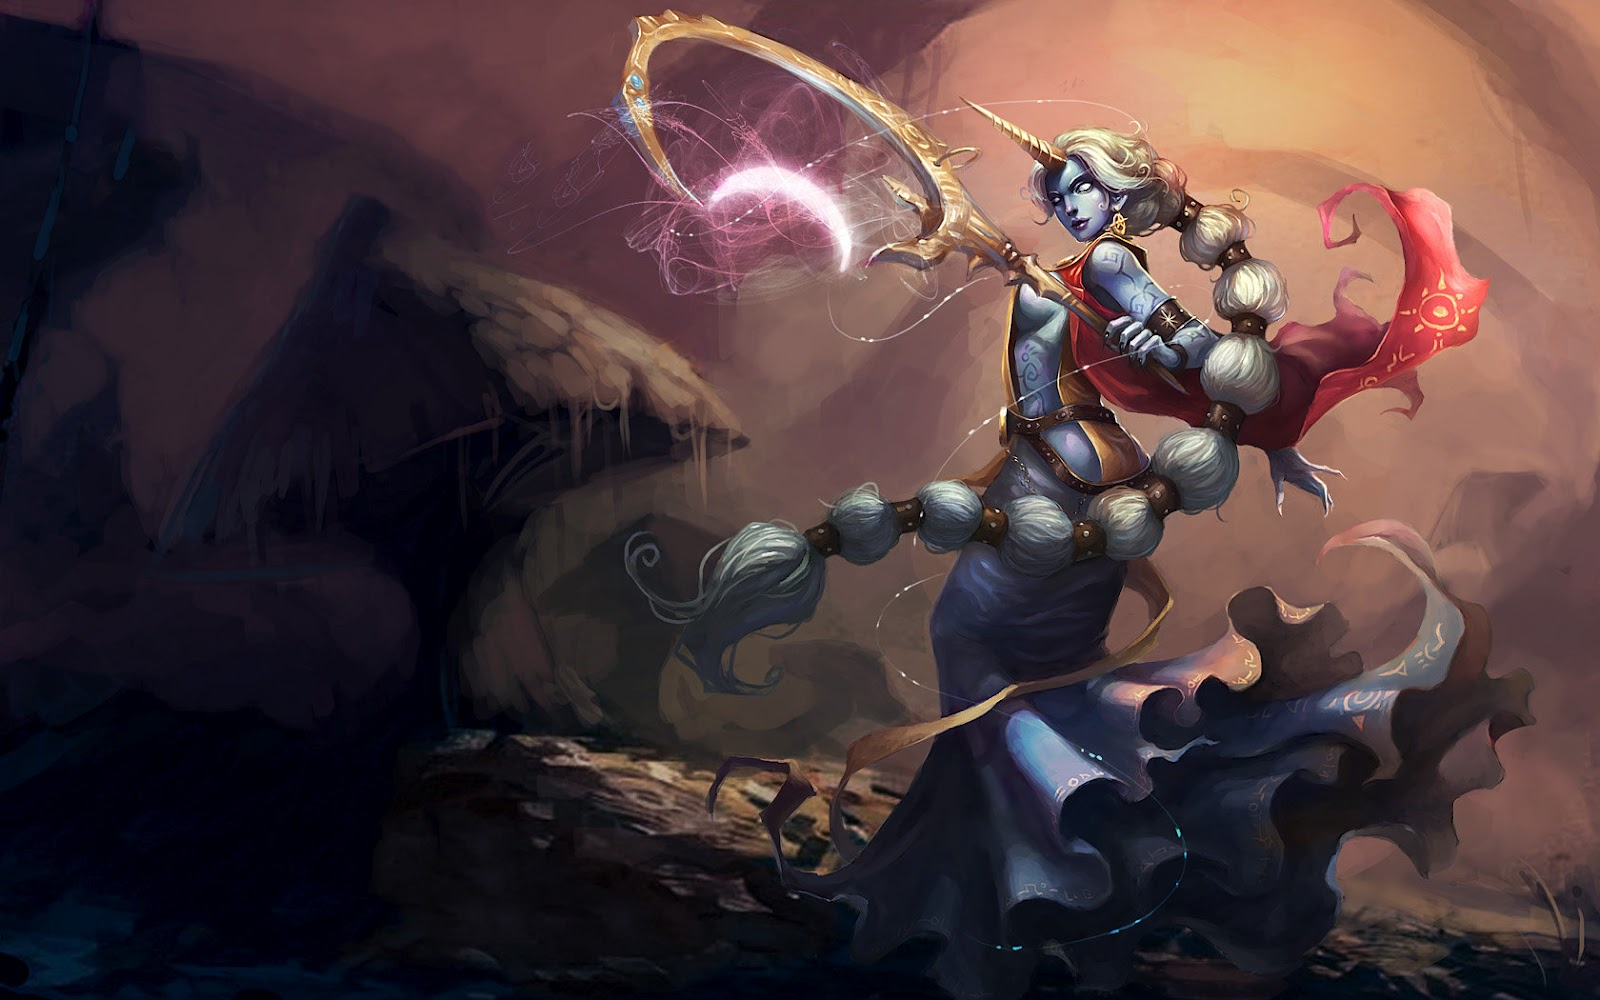 http://4.bp.blogspot.com/-BwF6YortCWg/UBdkjIsi7tI/AAAAAAAAI4w/fbPeSsCnJgE/s1600/6786_league_of_legends_hd_wallpapers.jpg